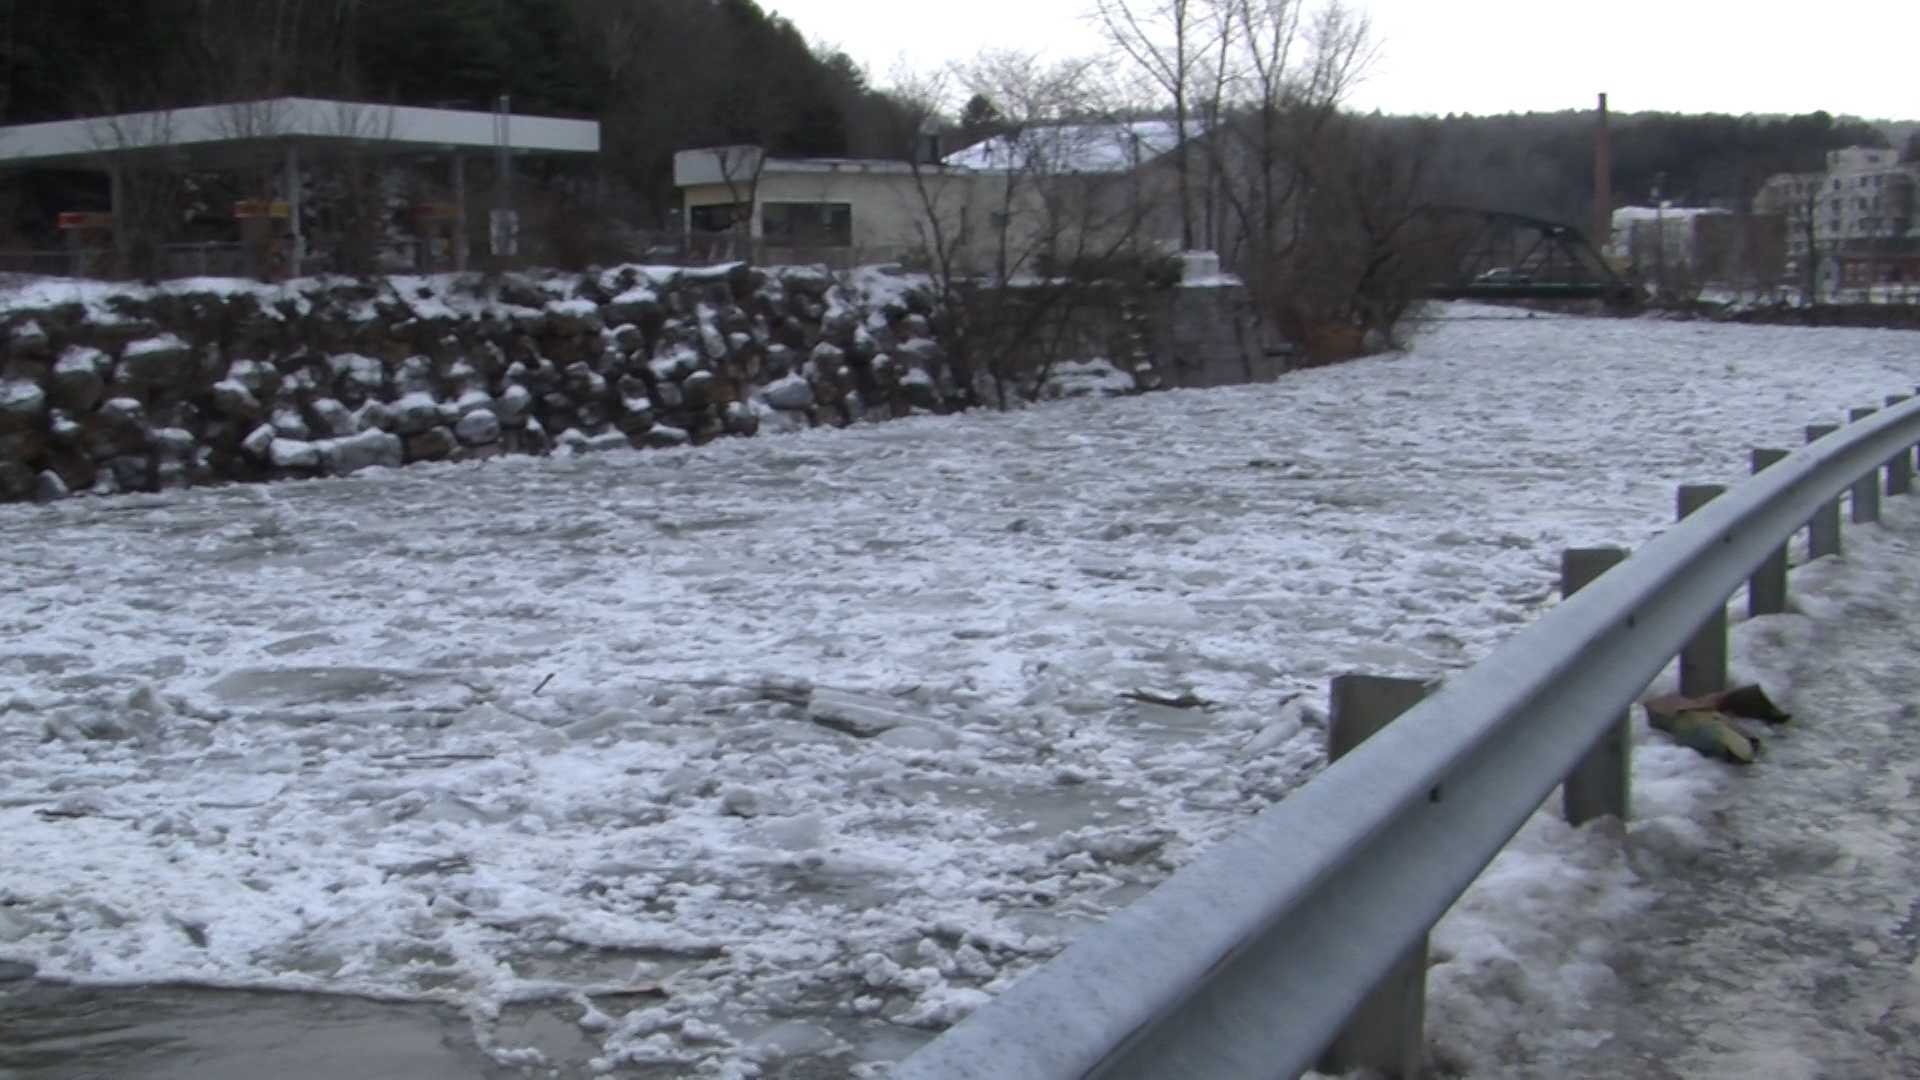 1-12-14  officials say ice jam is causing flooding - img